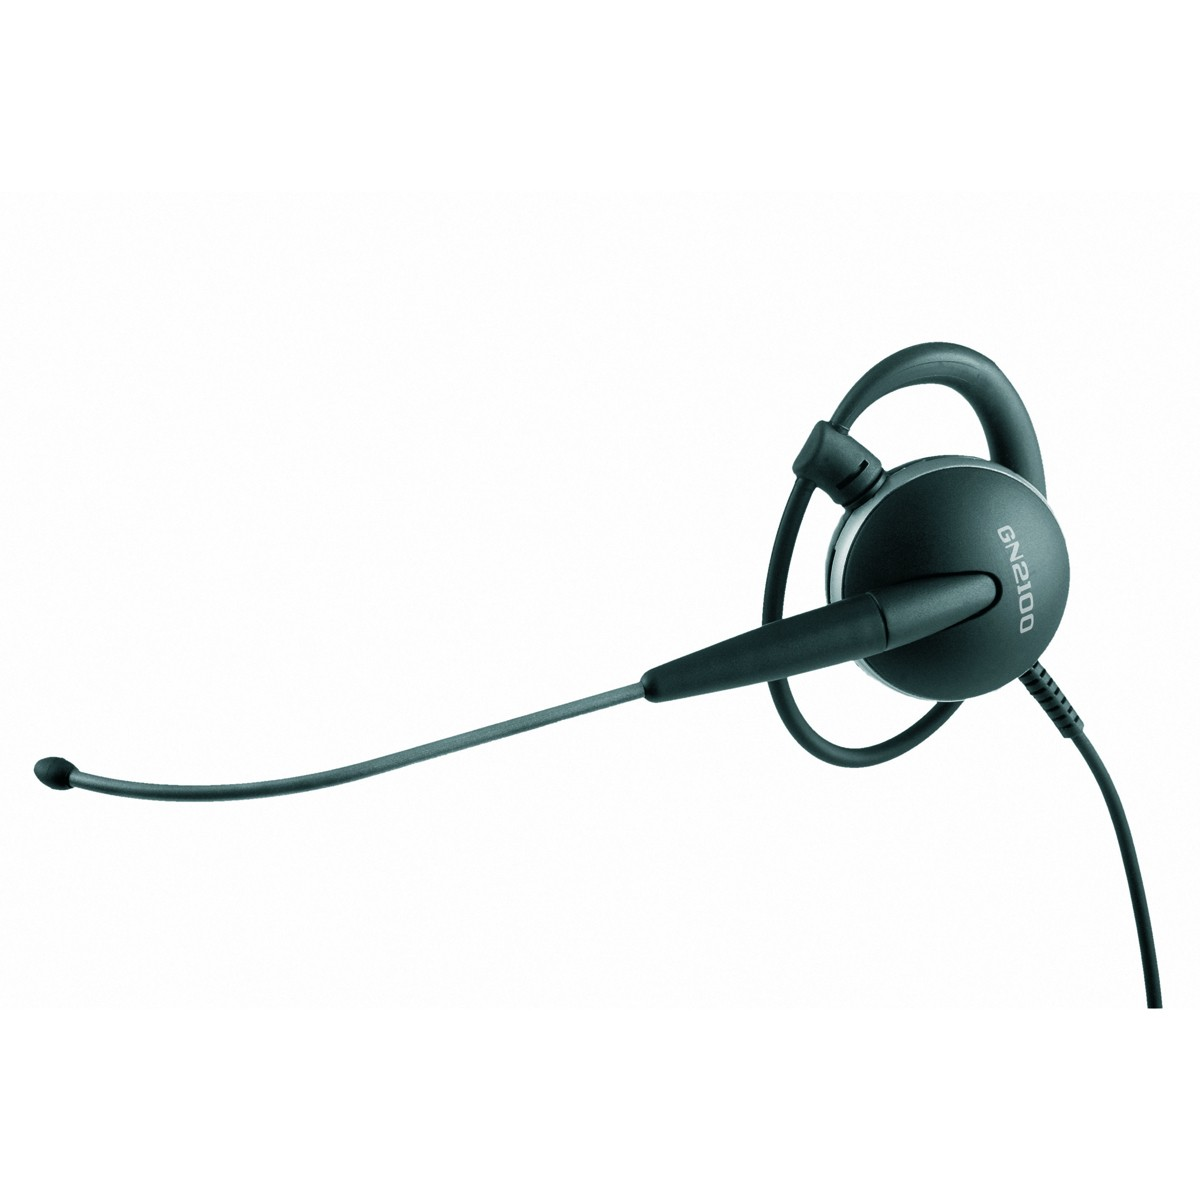 Gn Jabra Gn 2100 Mono on telephone to radio interface